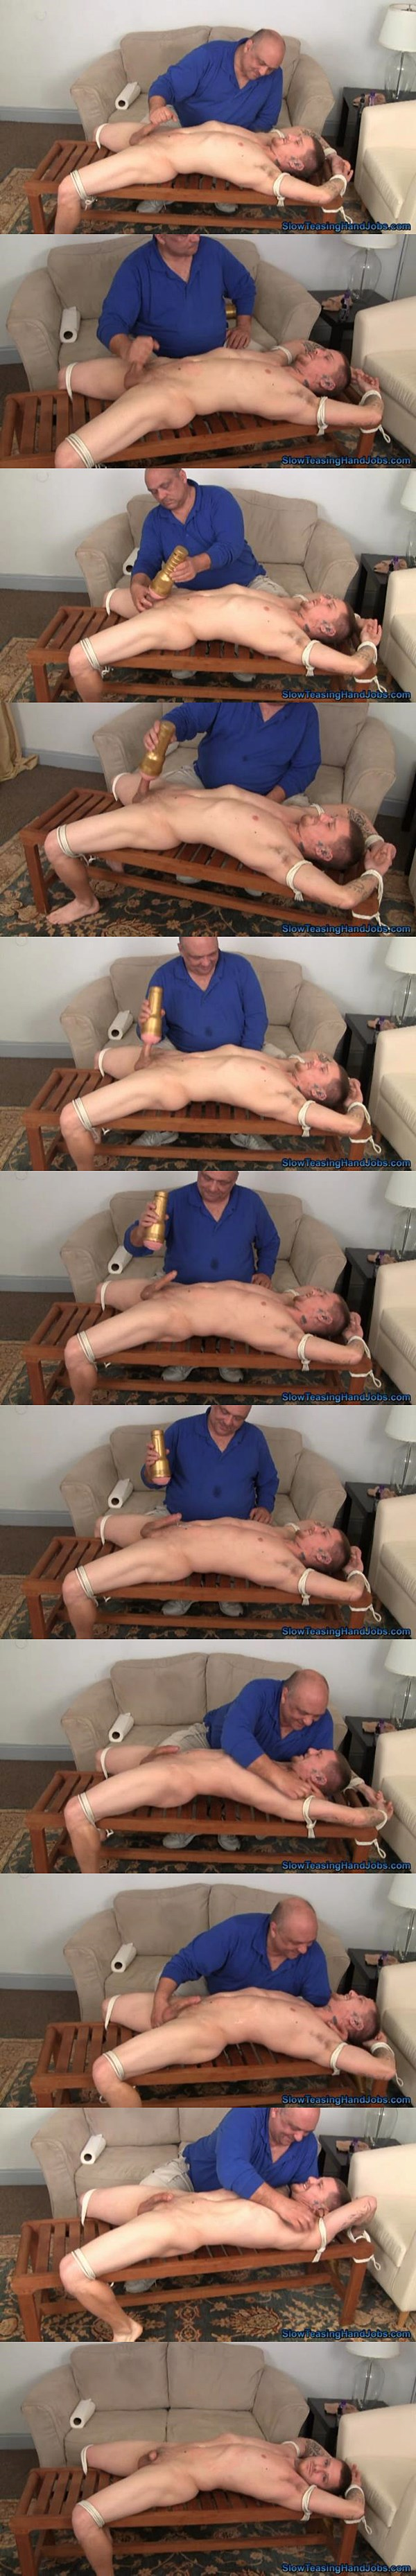 Young straight dude David gets edged by fleshlight till he shoots his big load then gets tickled at Slowteasinghandjobs 02